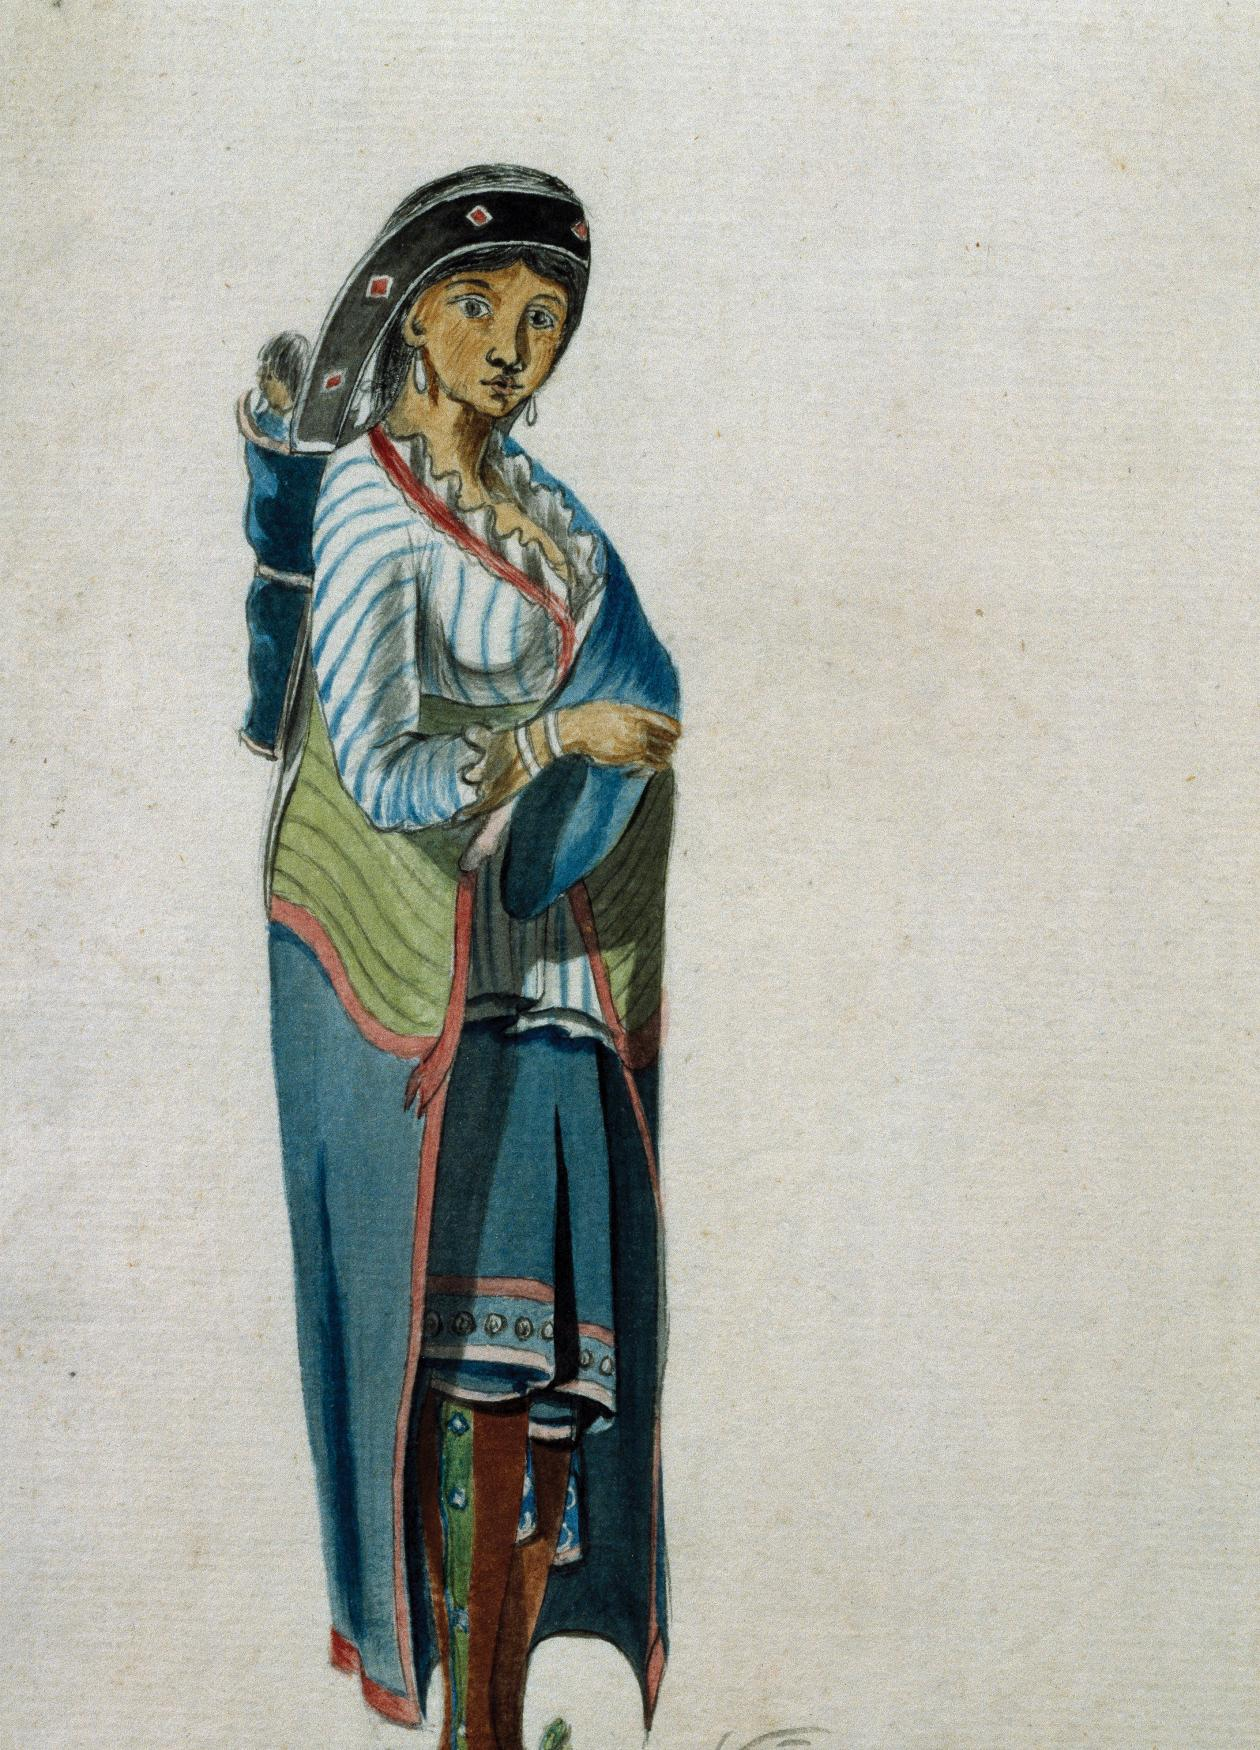 Watercolor painting of a Mohawk woman, wearing traditional Mohawk clothing, carrying a baby on her back